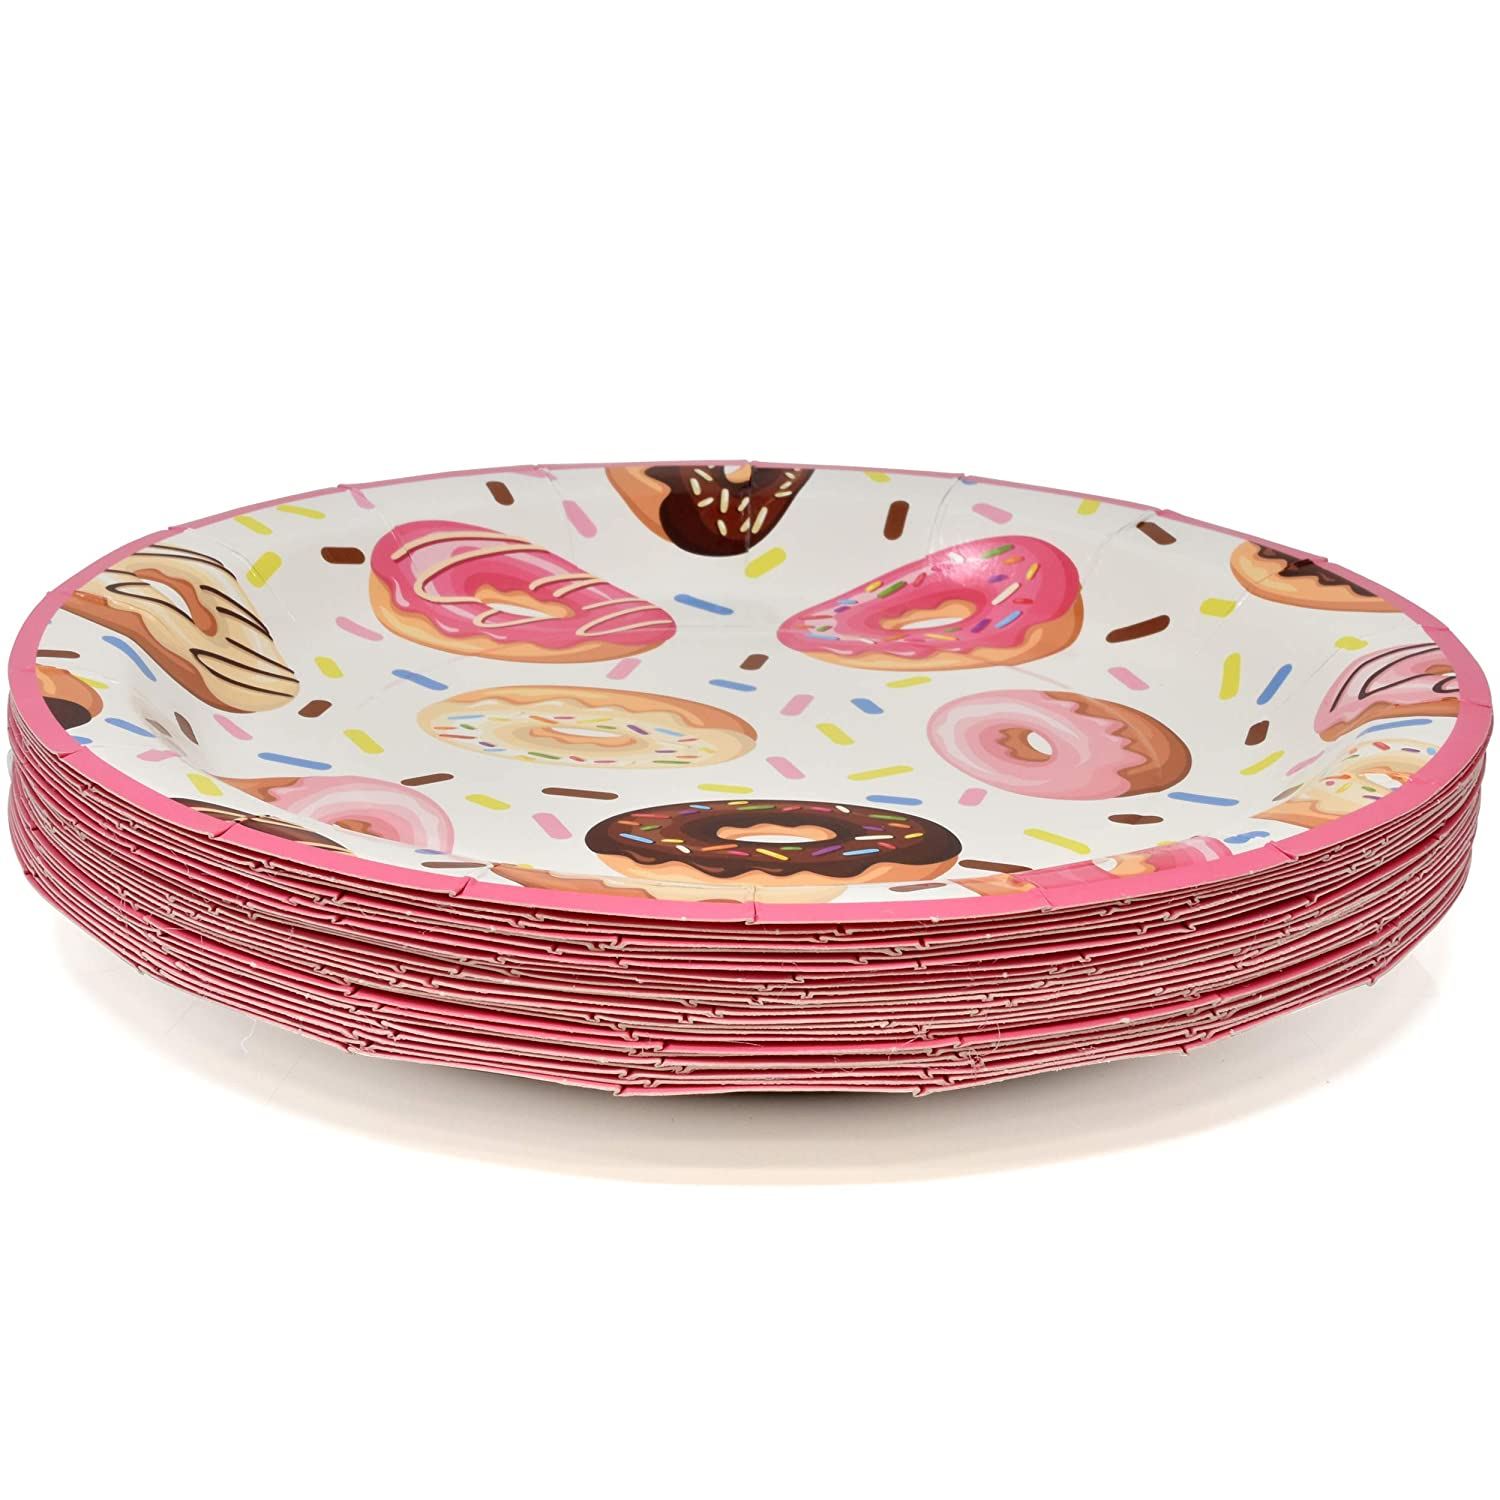 Donuts Party Supplies Tableware Set 24 9 Dinner Plates 24 7 Plate 24 9 Oz Cups 50 Lunch Napkins Doughnut Sprinkles Themed Disposable Paper Goods For Girls Boys Baby Shower